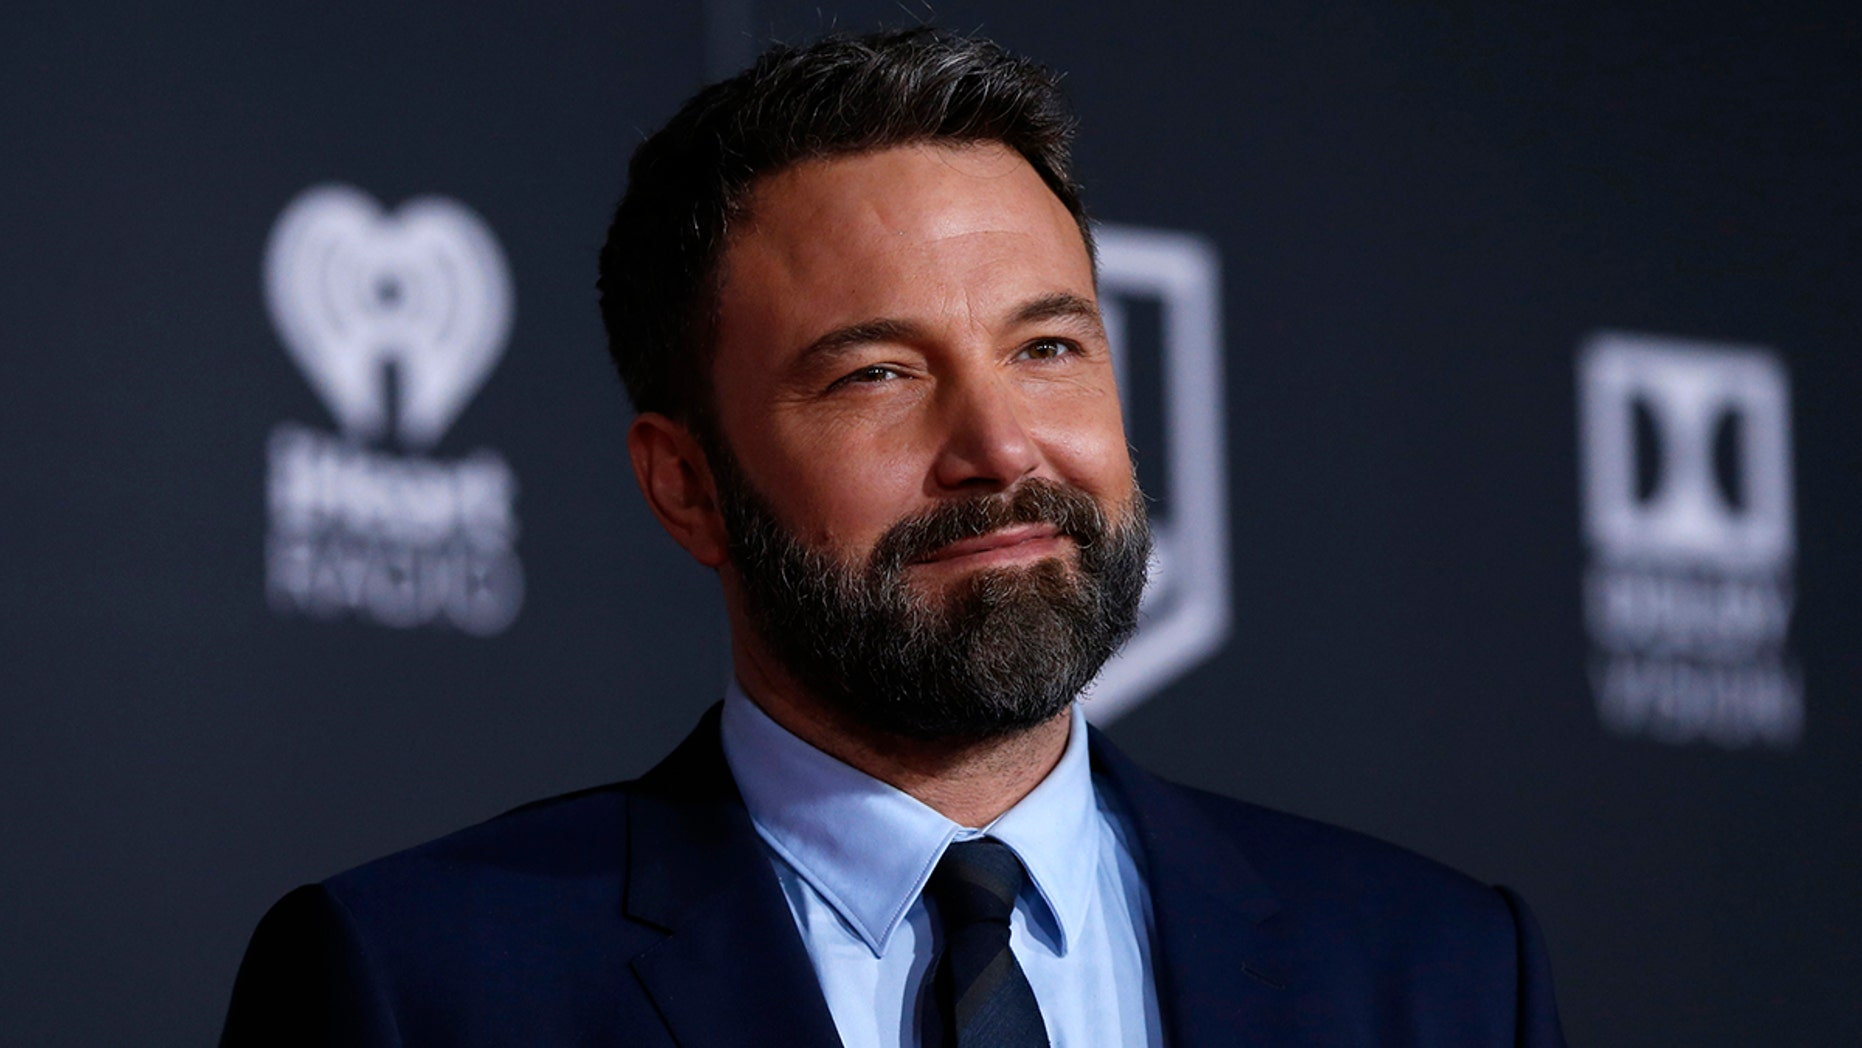 The actor Facetimed a refugee from the Congo who is battling terminal cancer and a fan of Affleck's work as Batman.